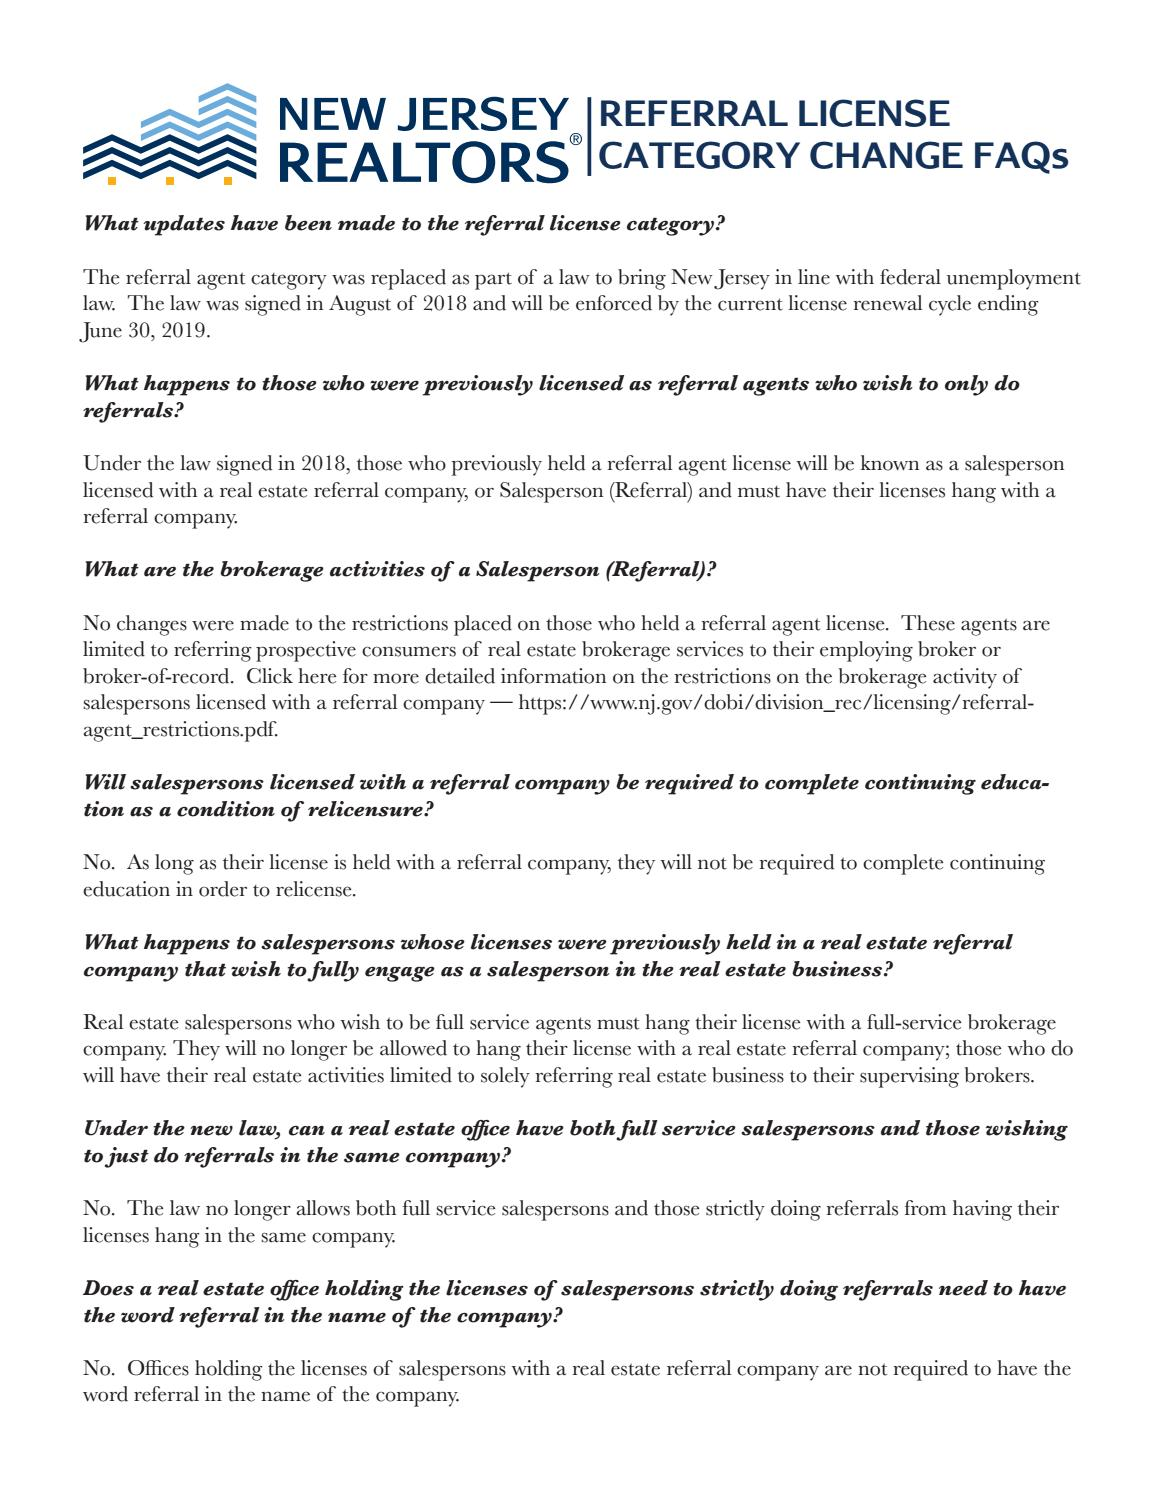 Referral License Category Change Faqs By New Jersey Realtor Issuu